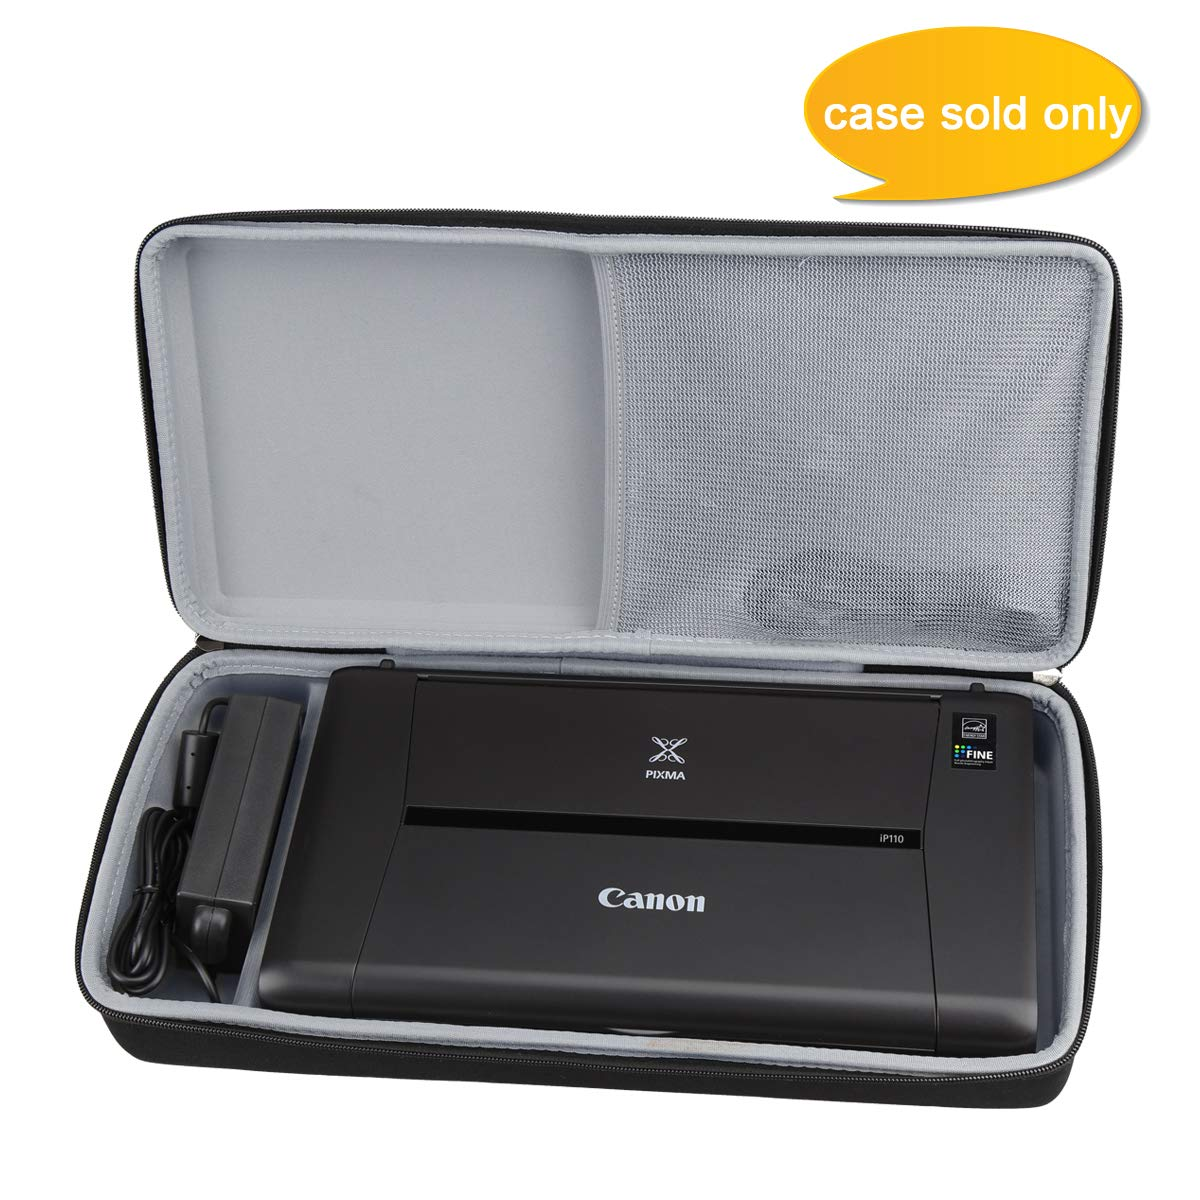 Aproca Hard Carrying Travel Case Fit Canon PIXMA iP110 Wireless Mobile Printer (Black)